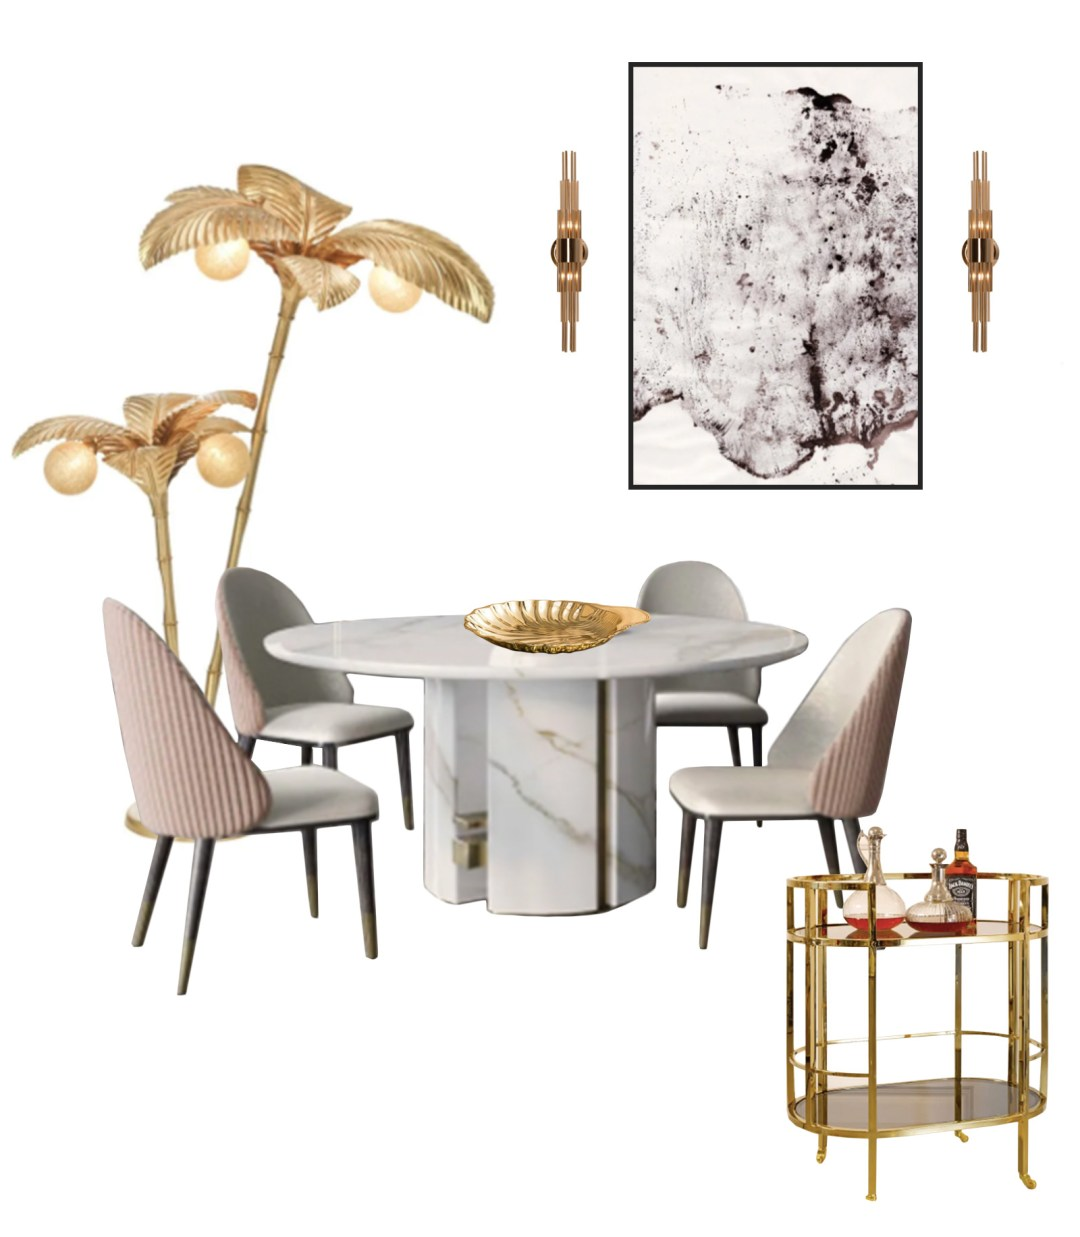 Dine In Style This Christmas - Juliettes Interiors